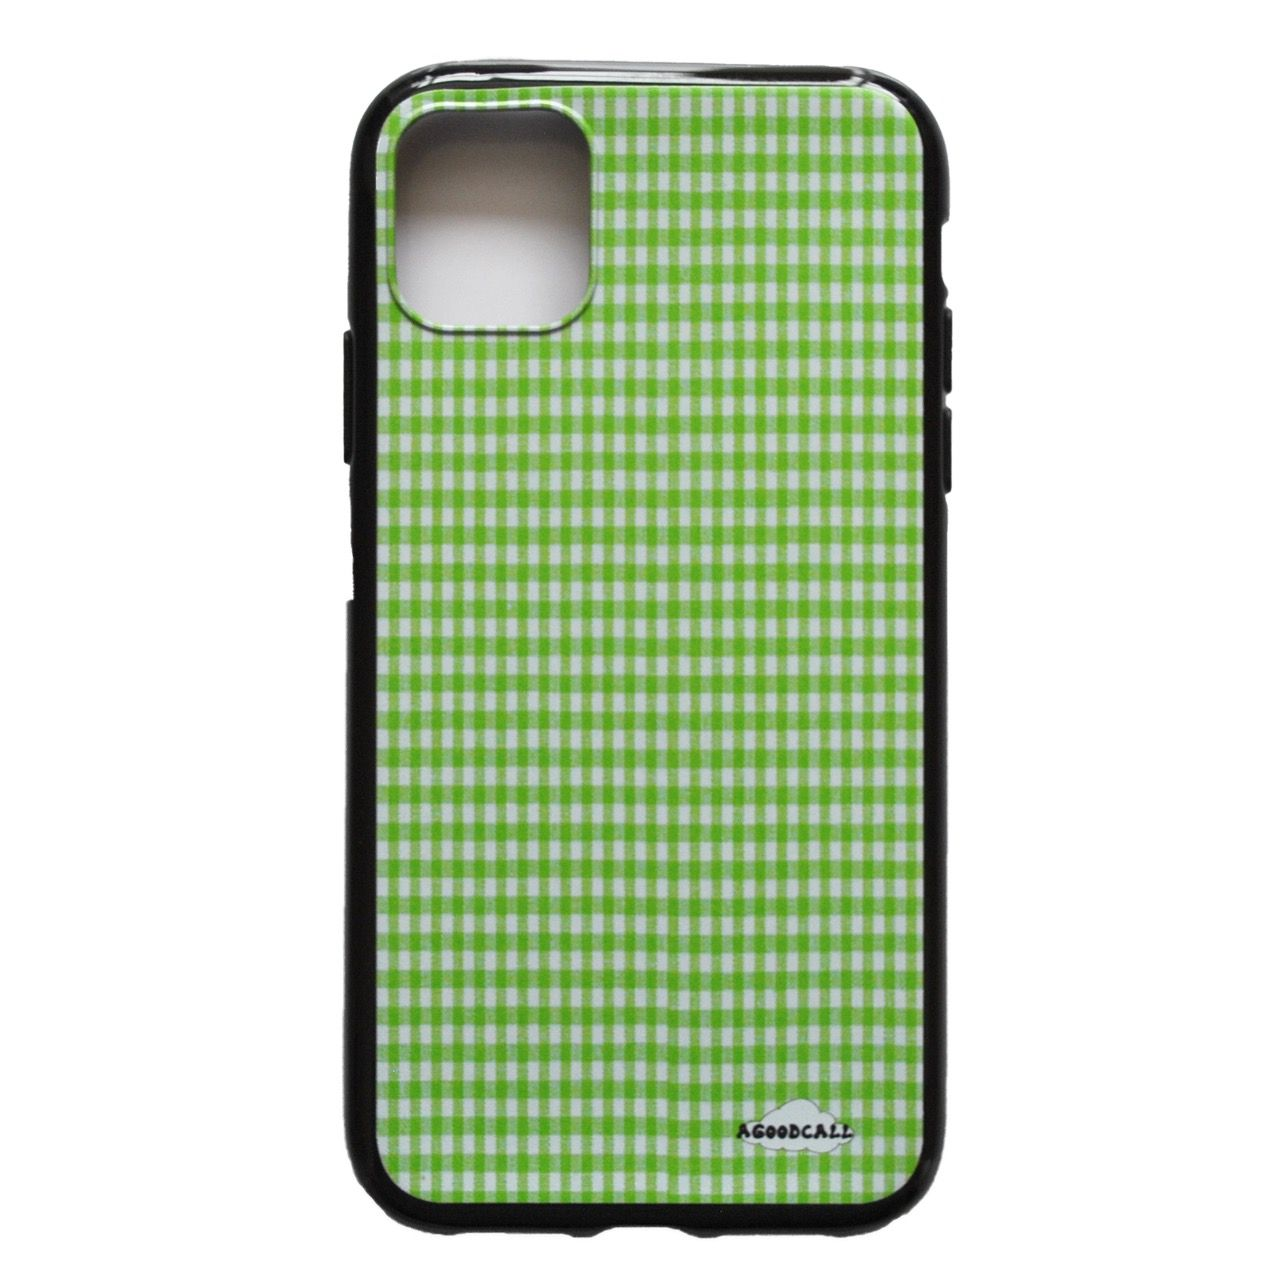 The Gingham Style - iPhone case